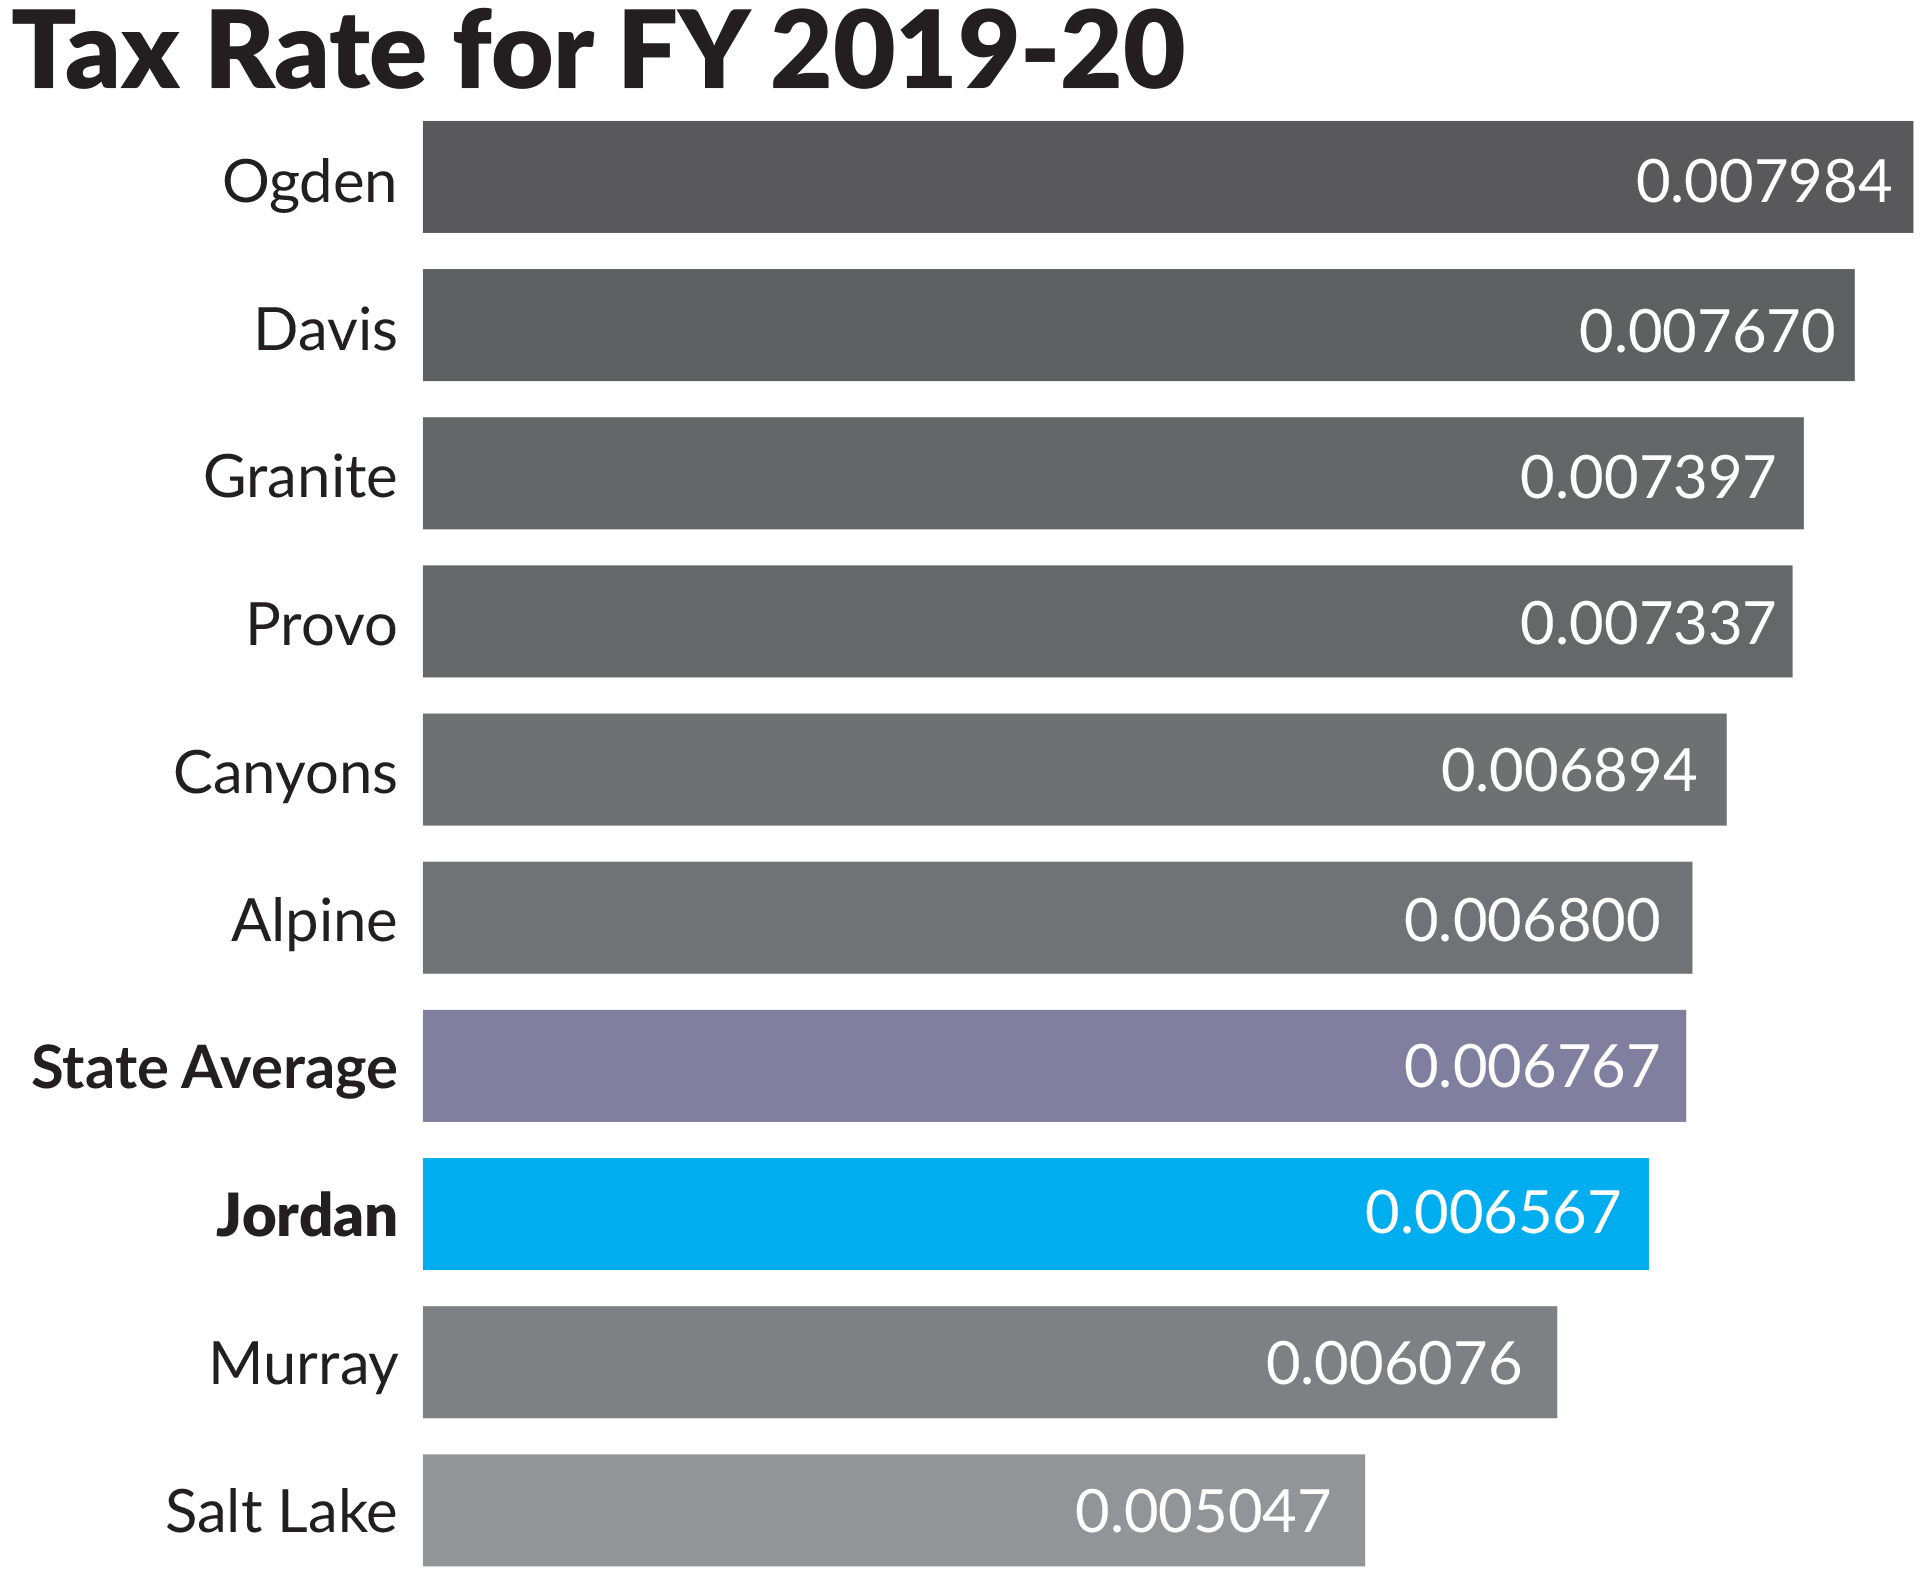 Tax Rate for FY 2019-20